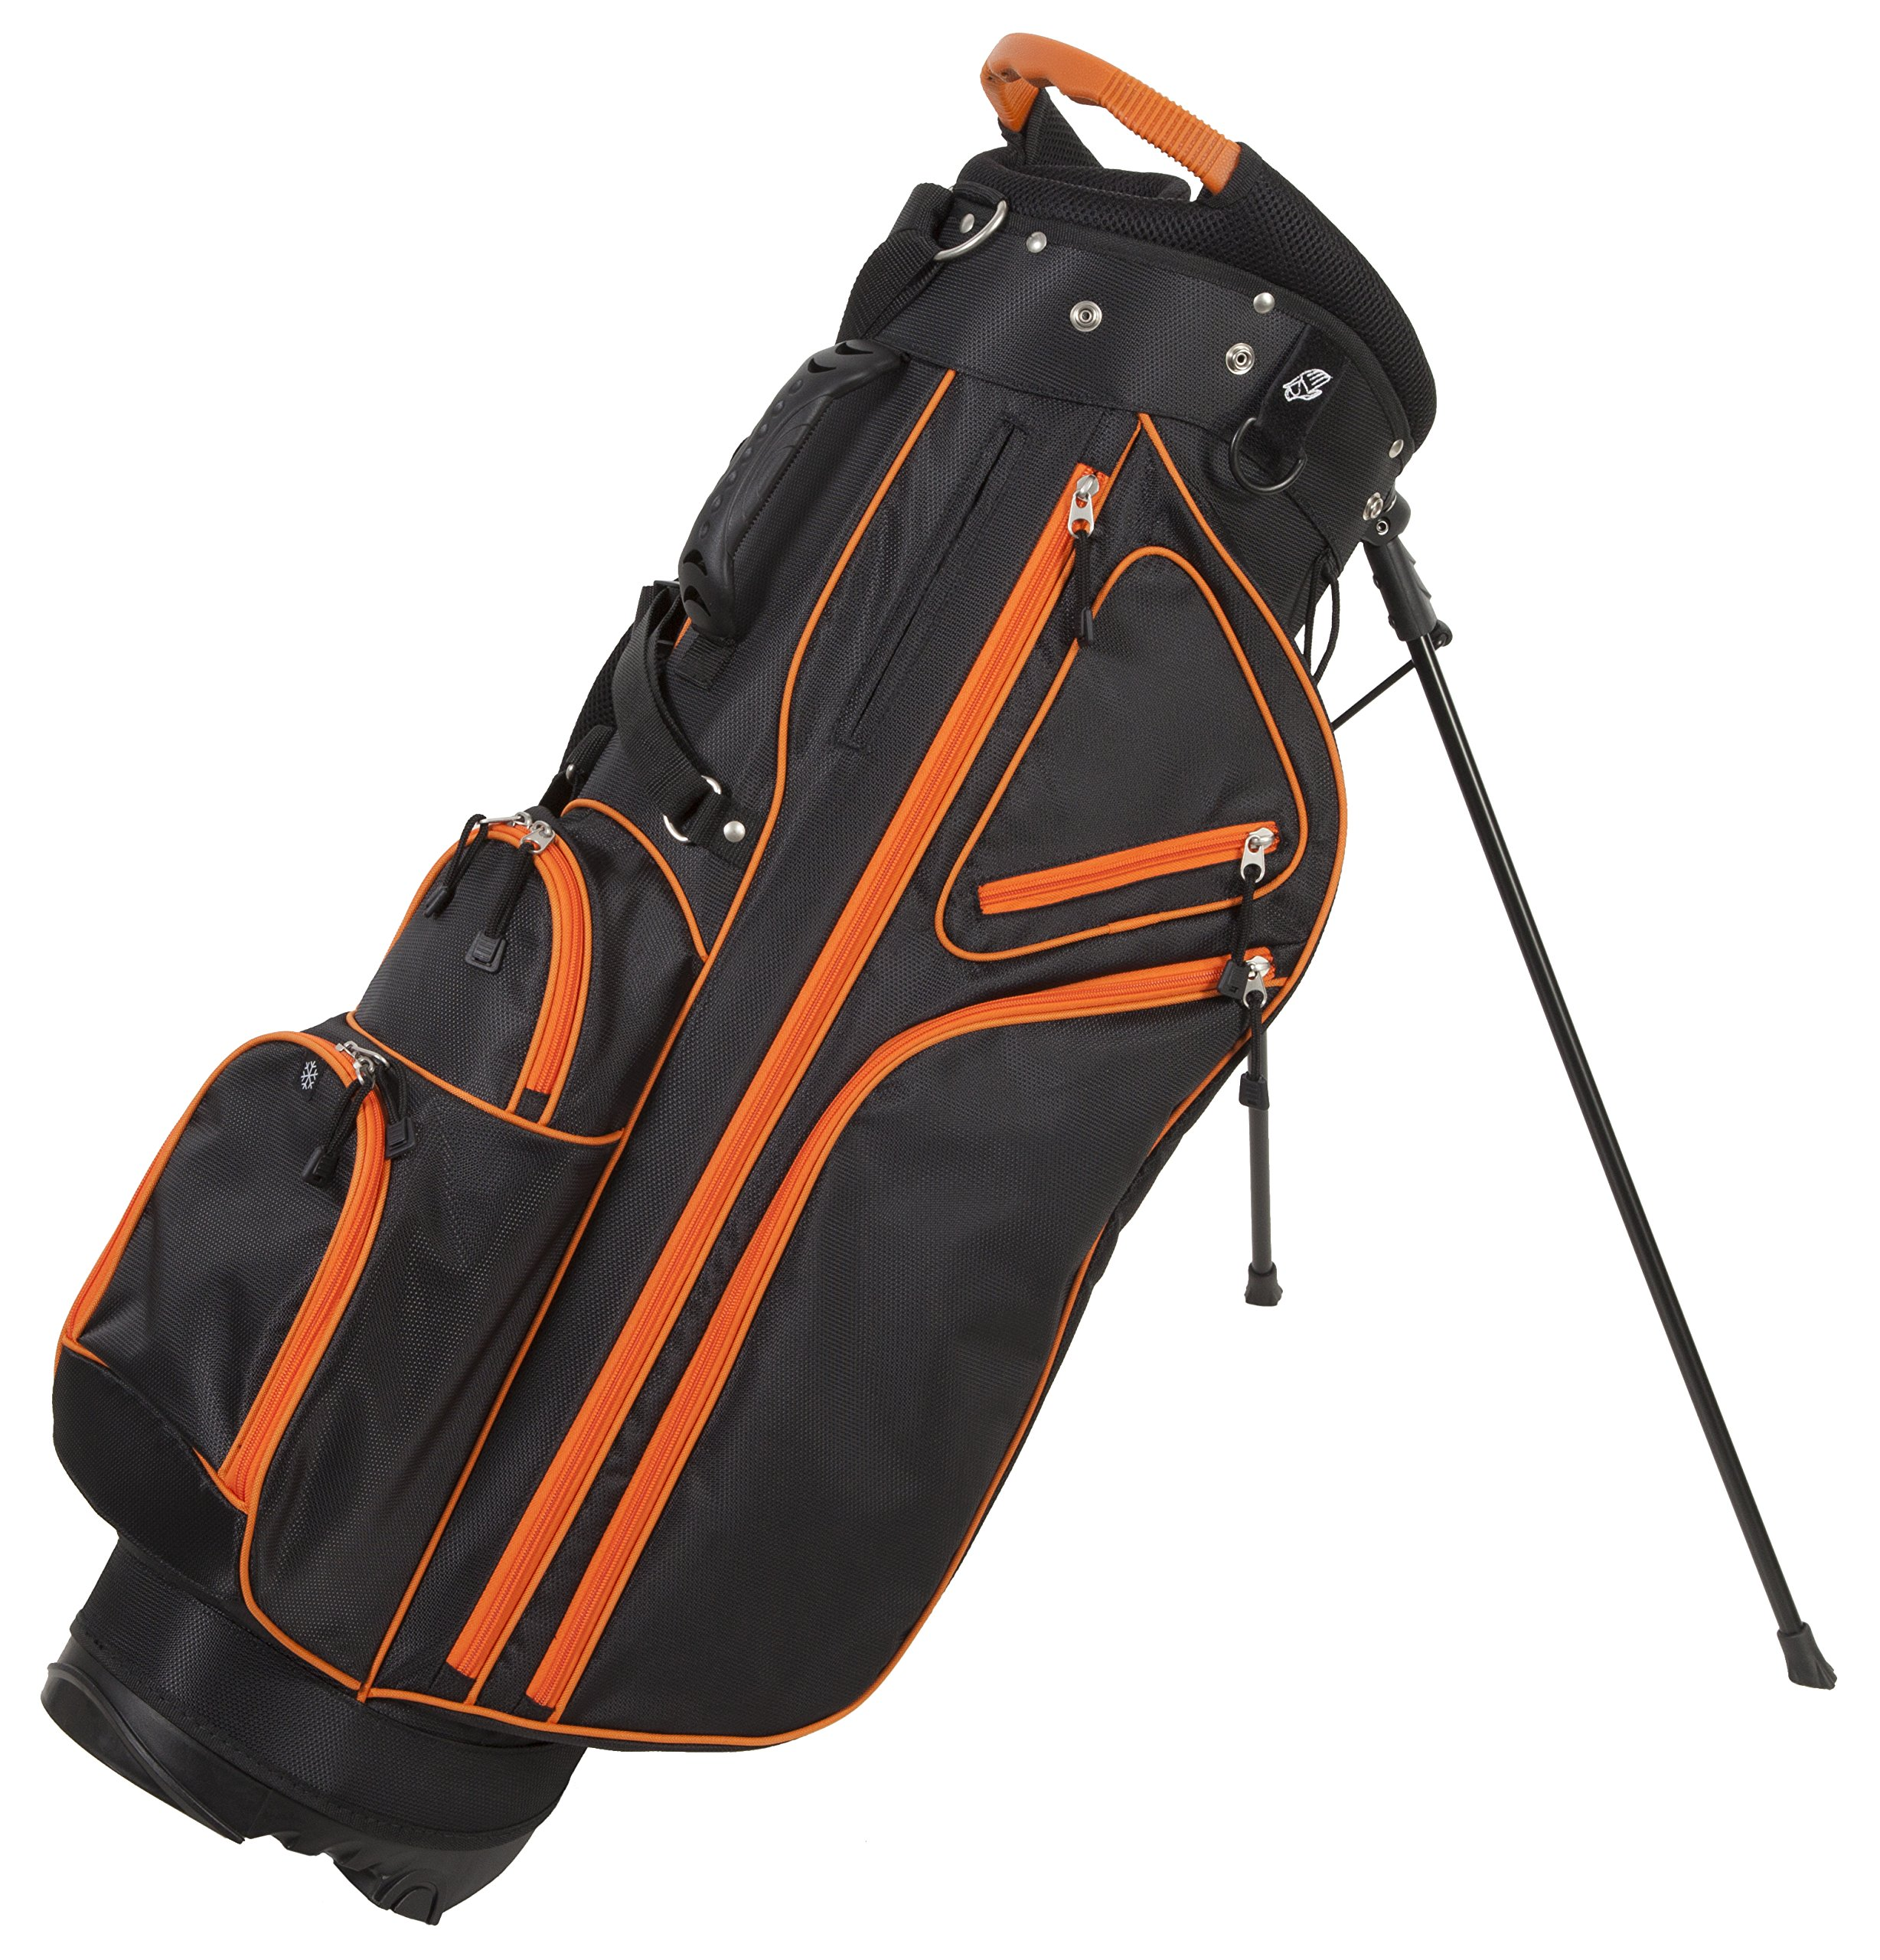 Pinemeadow Golf Courier 3.0 Stand Bag, Black/Orange